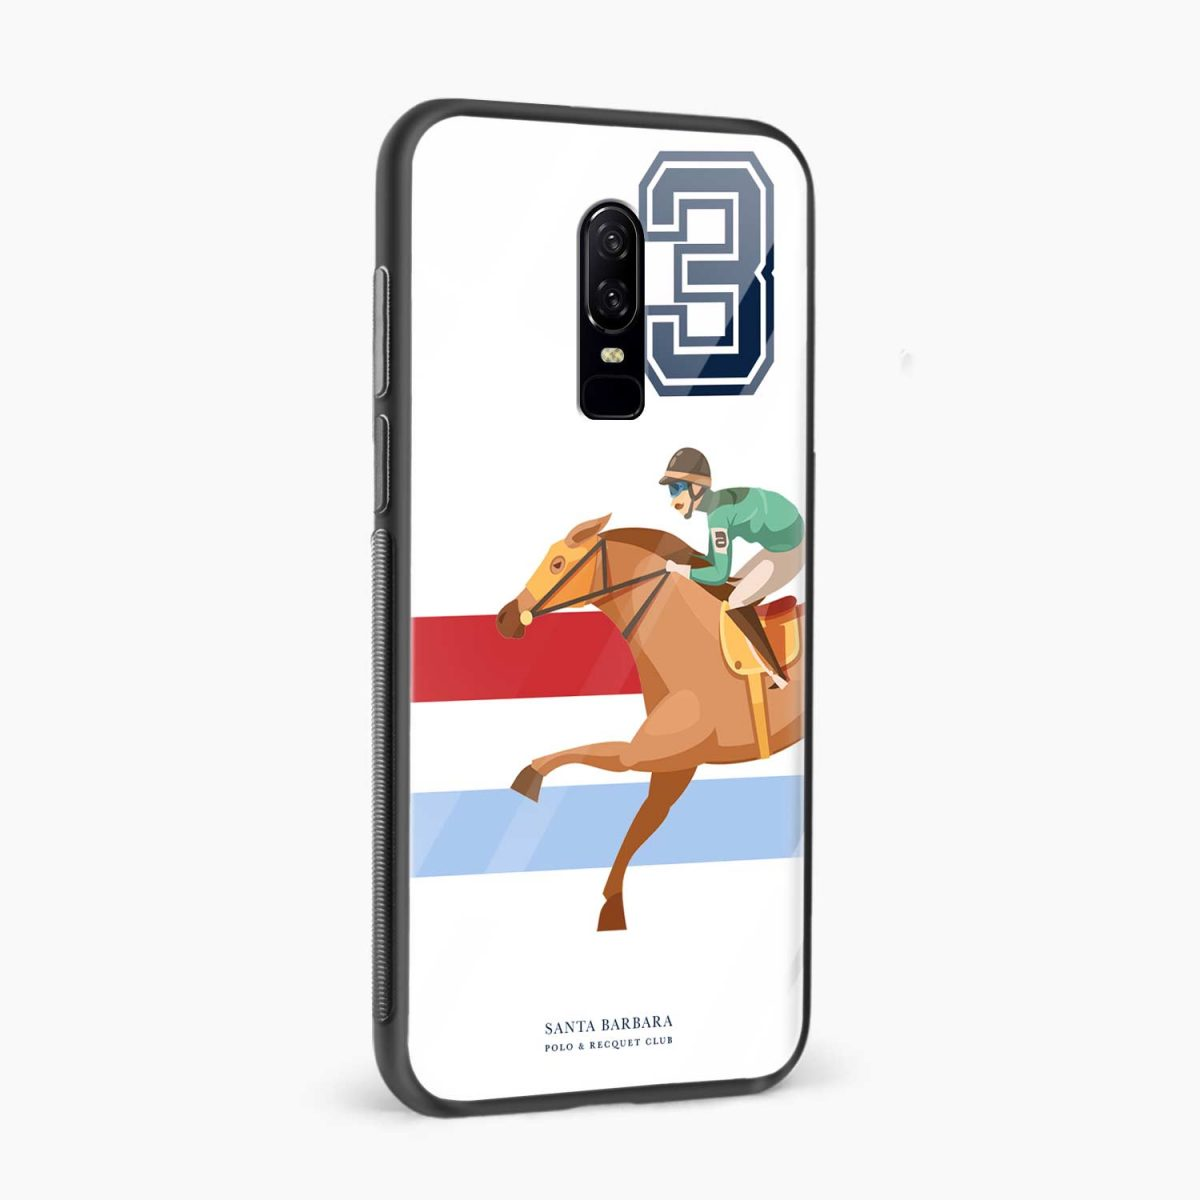 3D Santa Barbara side view oneplus 6 back cover